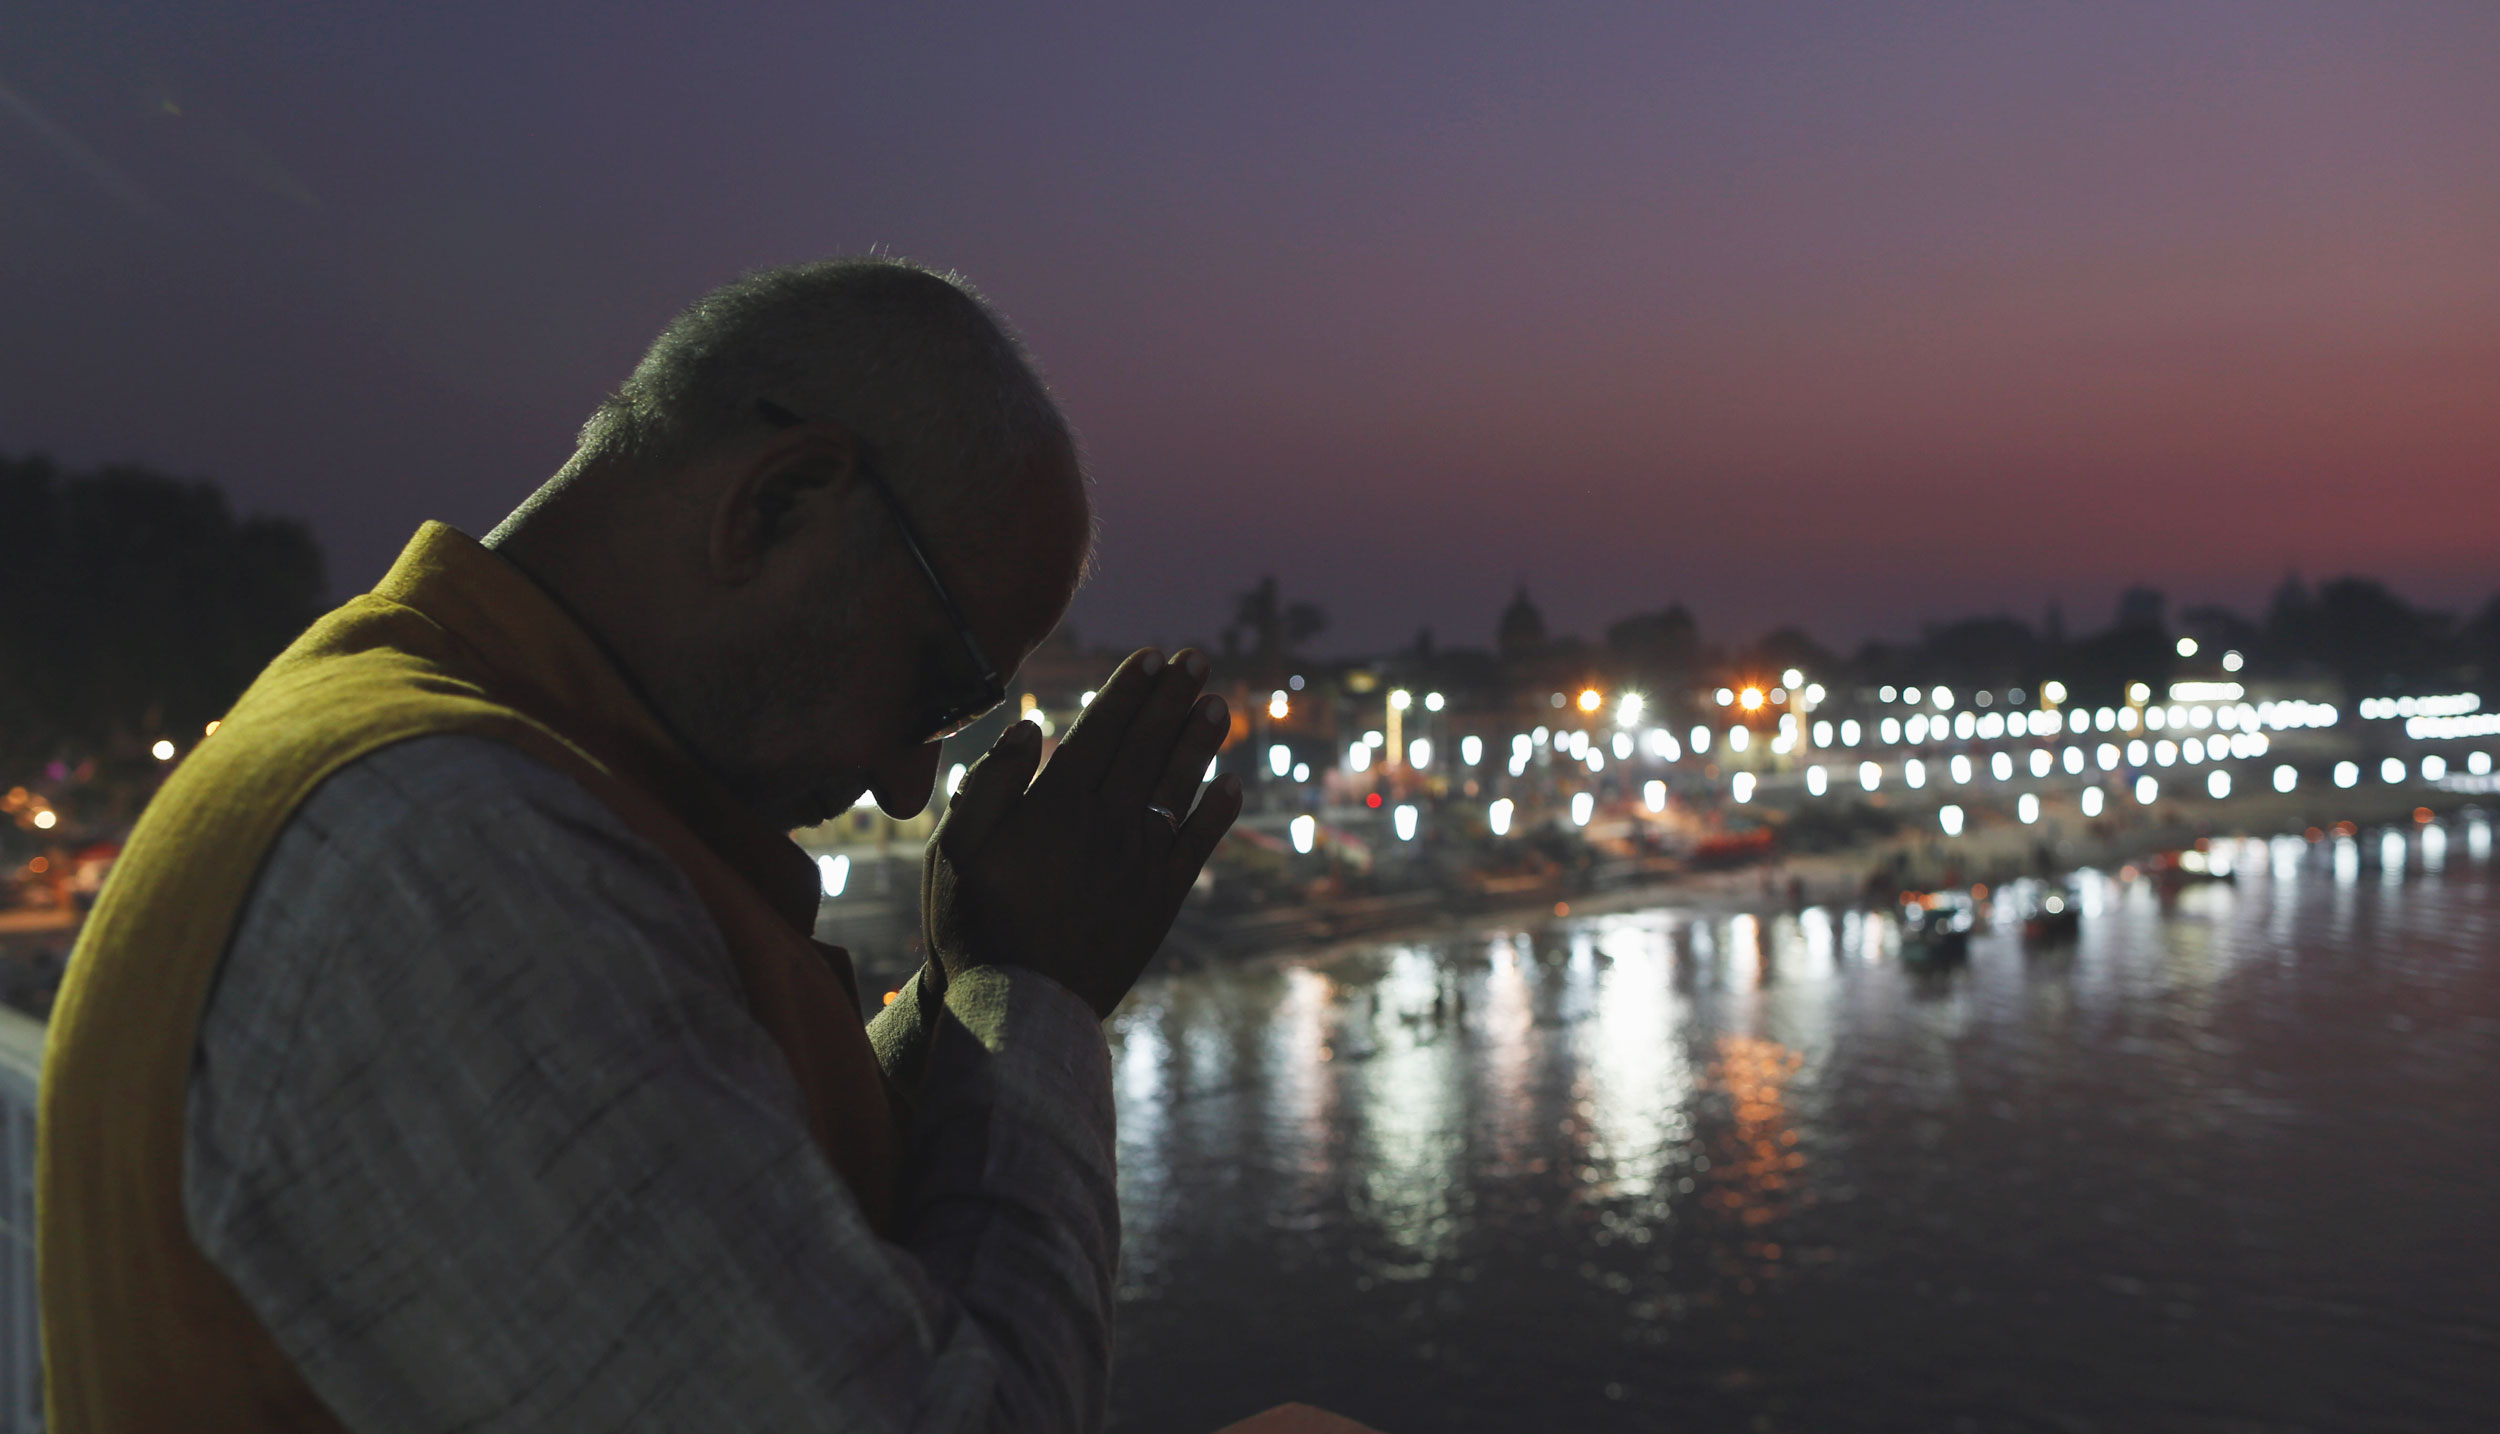 A Hindu devotee prays on the banks of Saryu River after the sunset in Ayodhya on November 10, 2019.